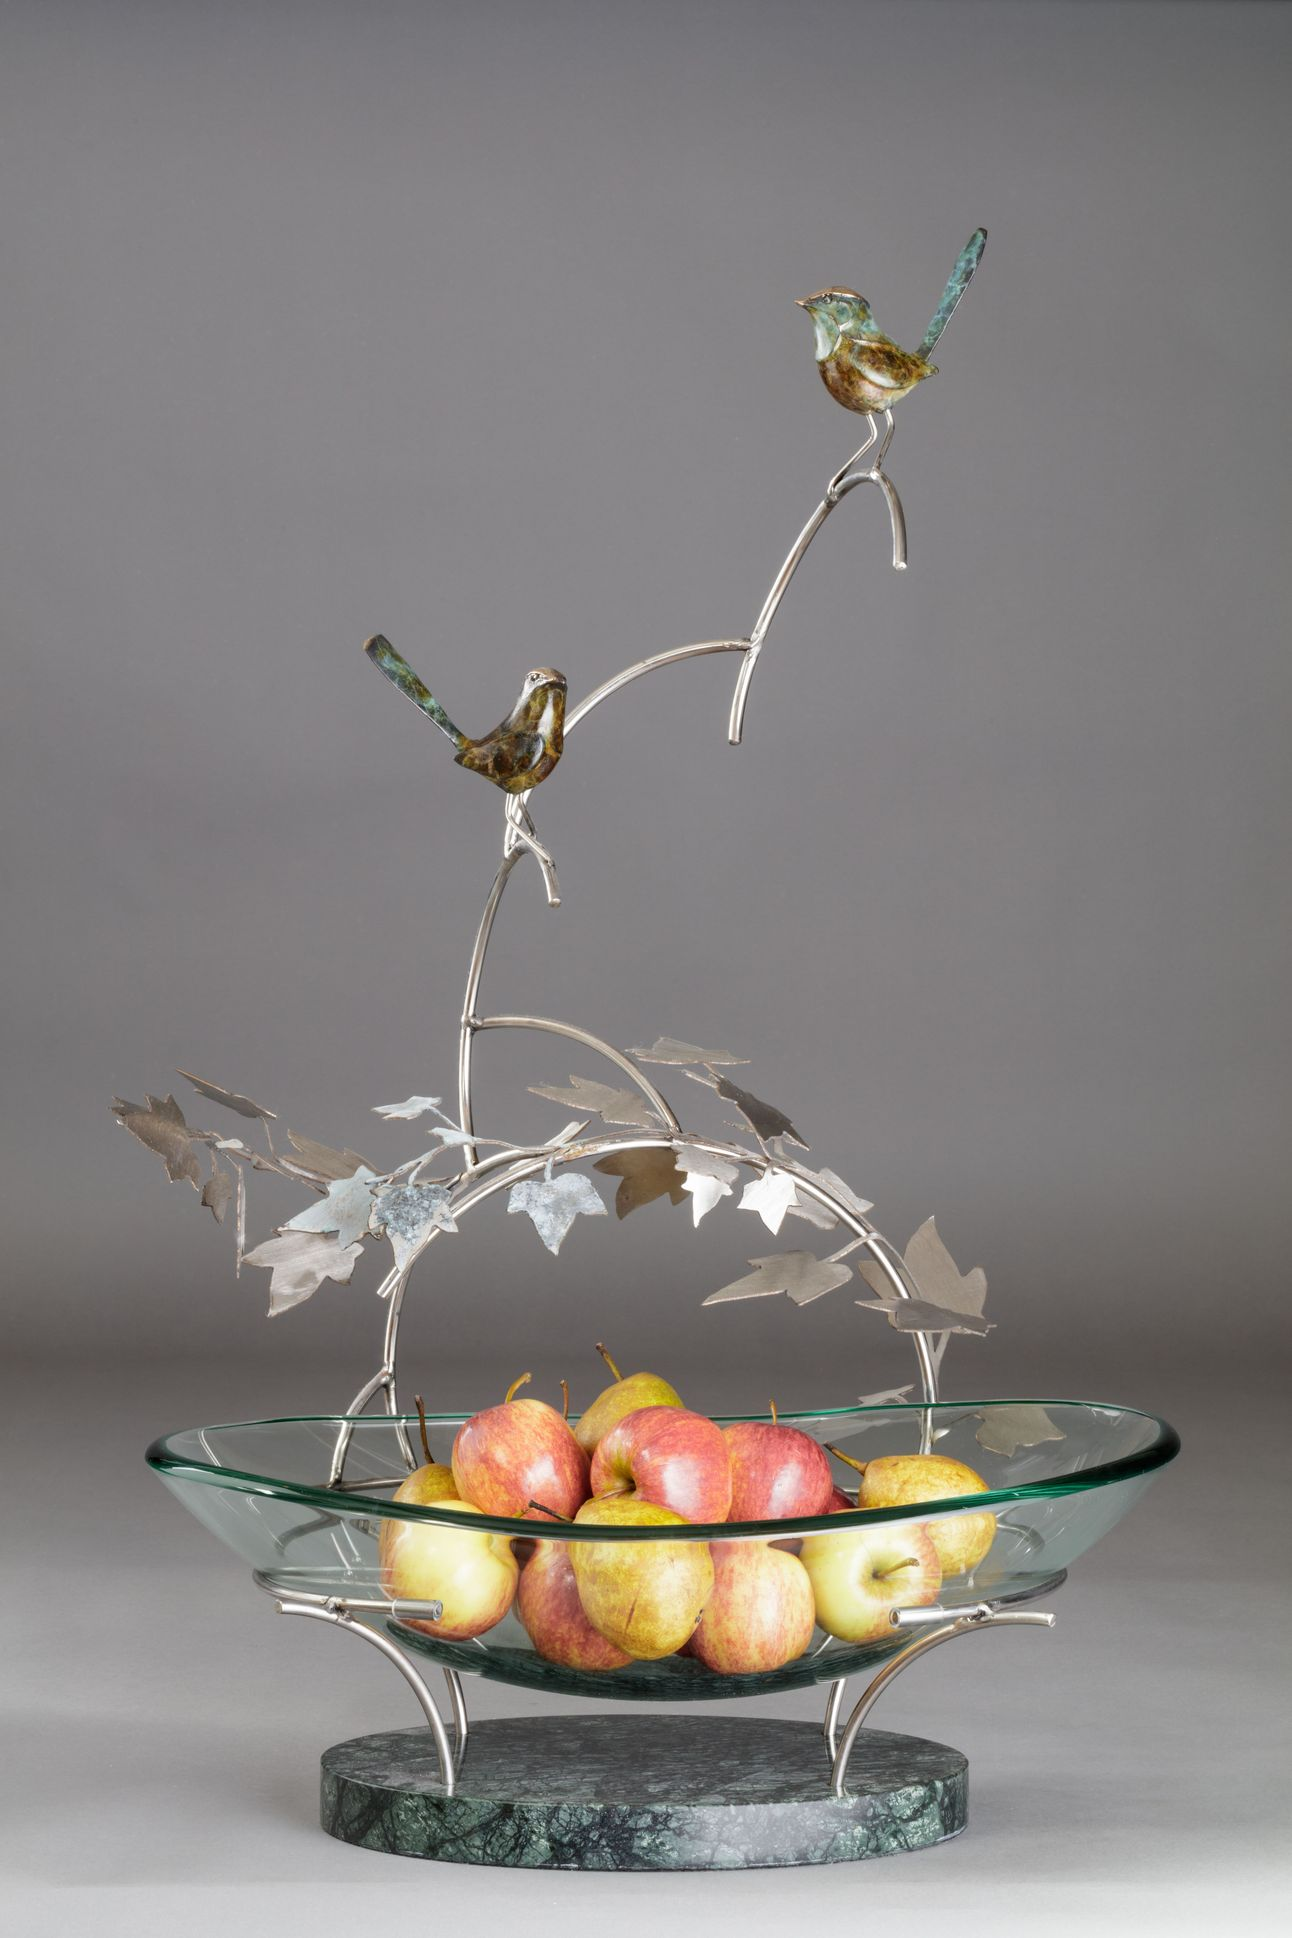 Wrens on a fruit bowl